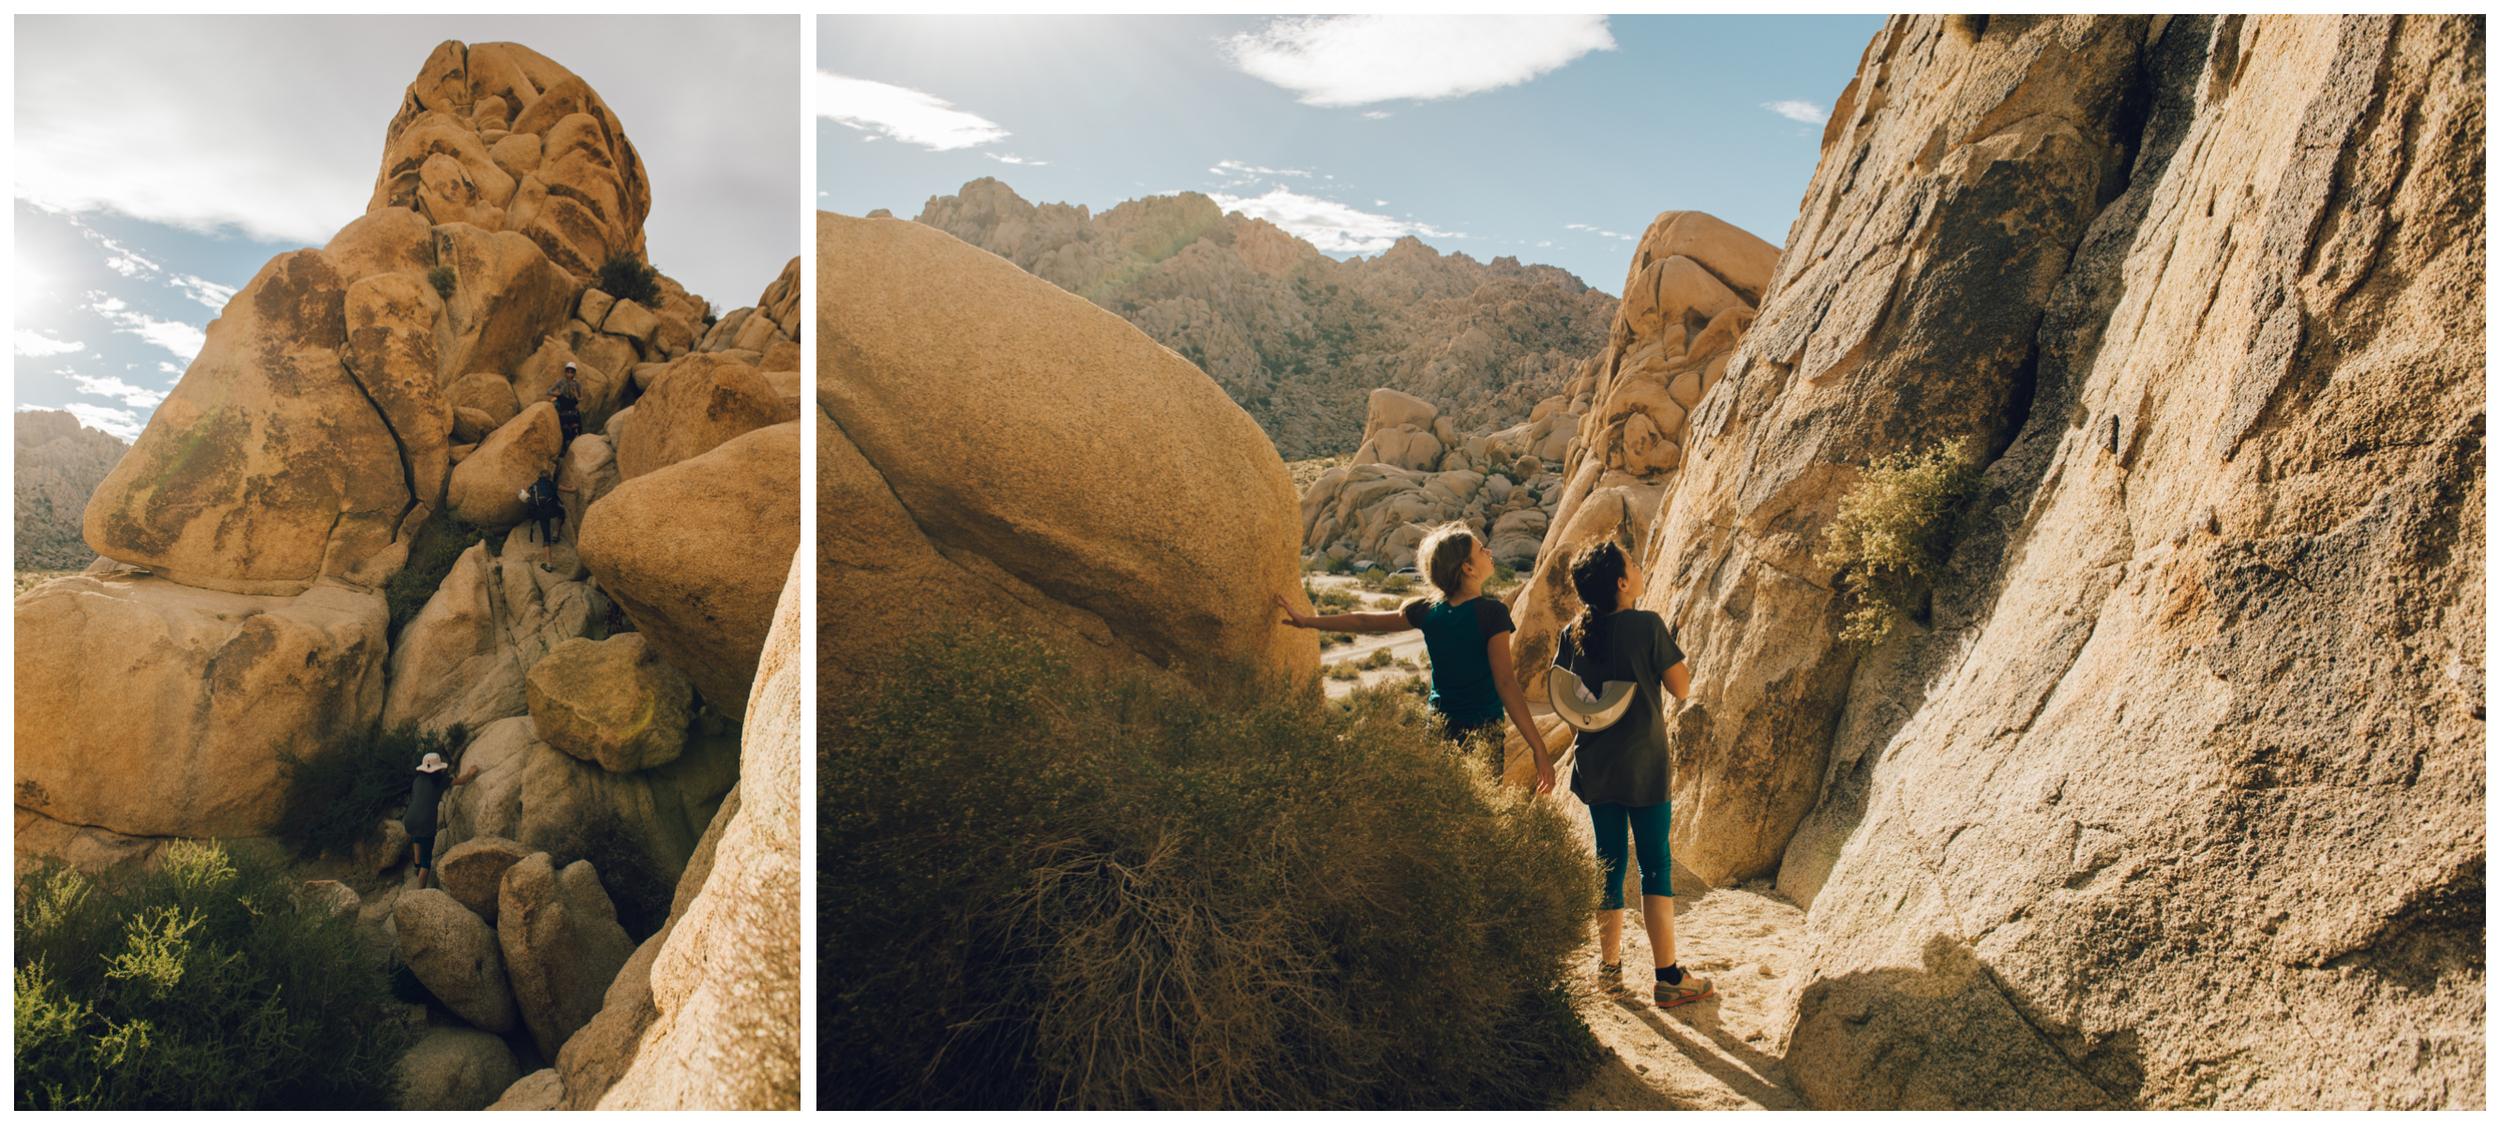 Left: scrambling up to the route. Right: trying to spot all the bolts... not an easy task in Joshua Tree!